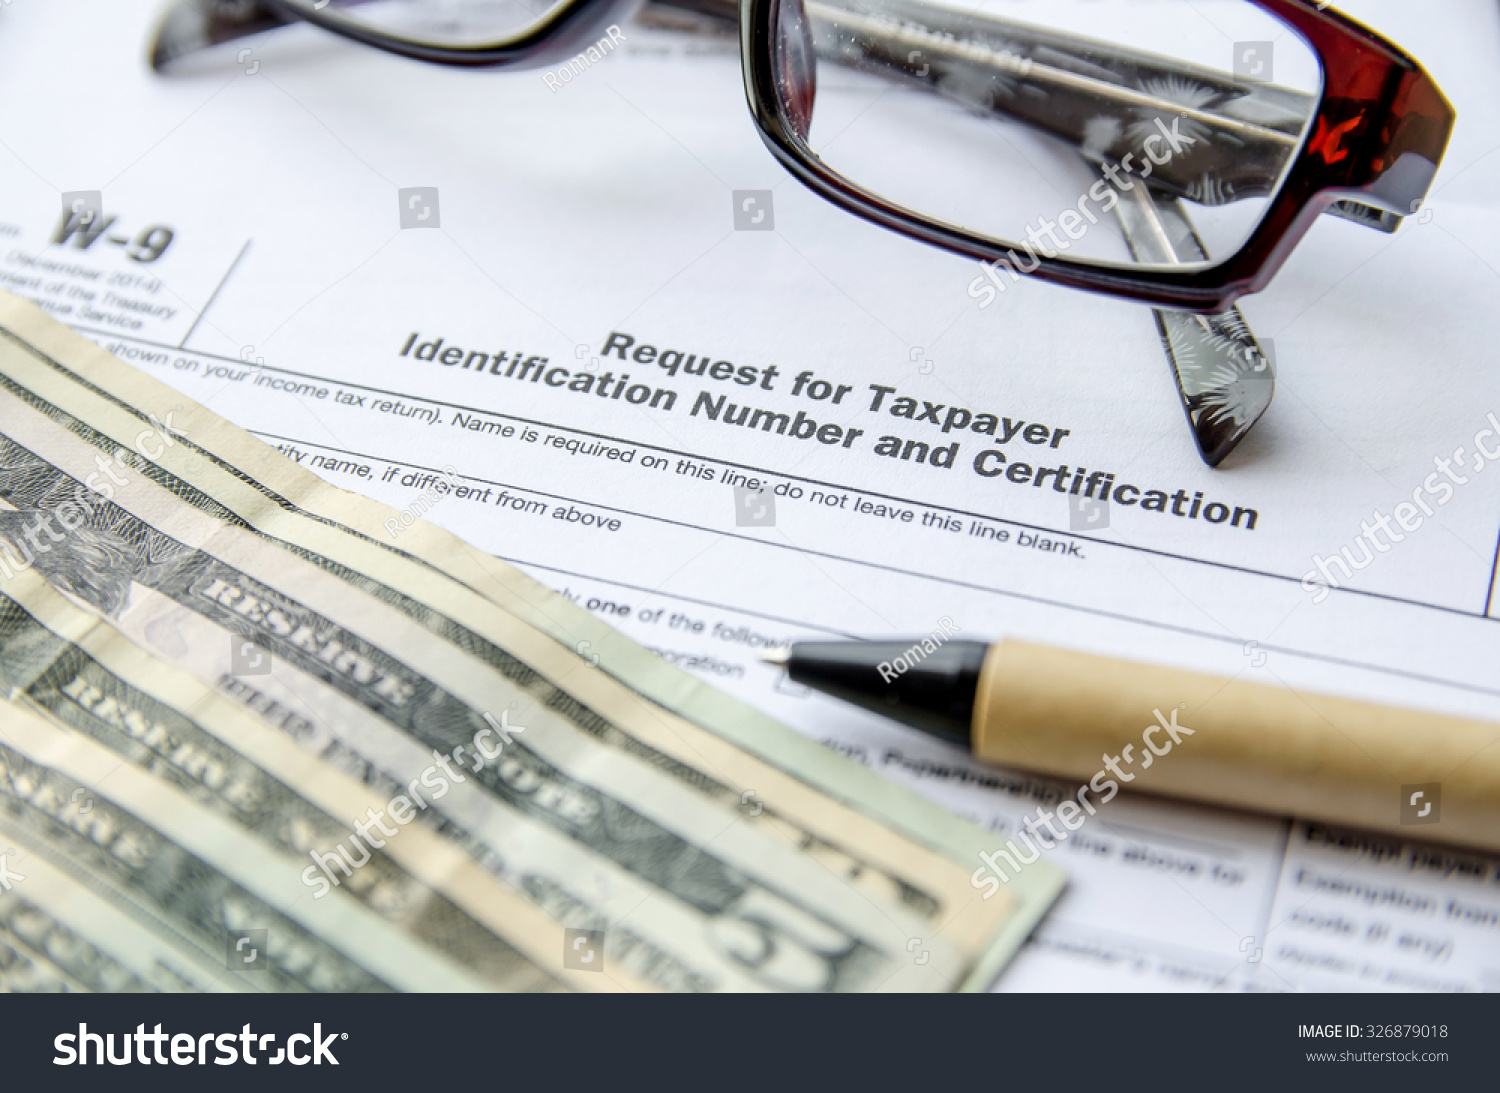 W 9 Form Request Taxpayer Indentification Number Stock Photo